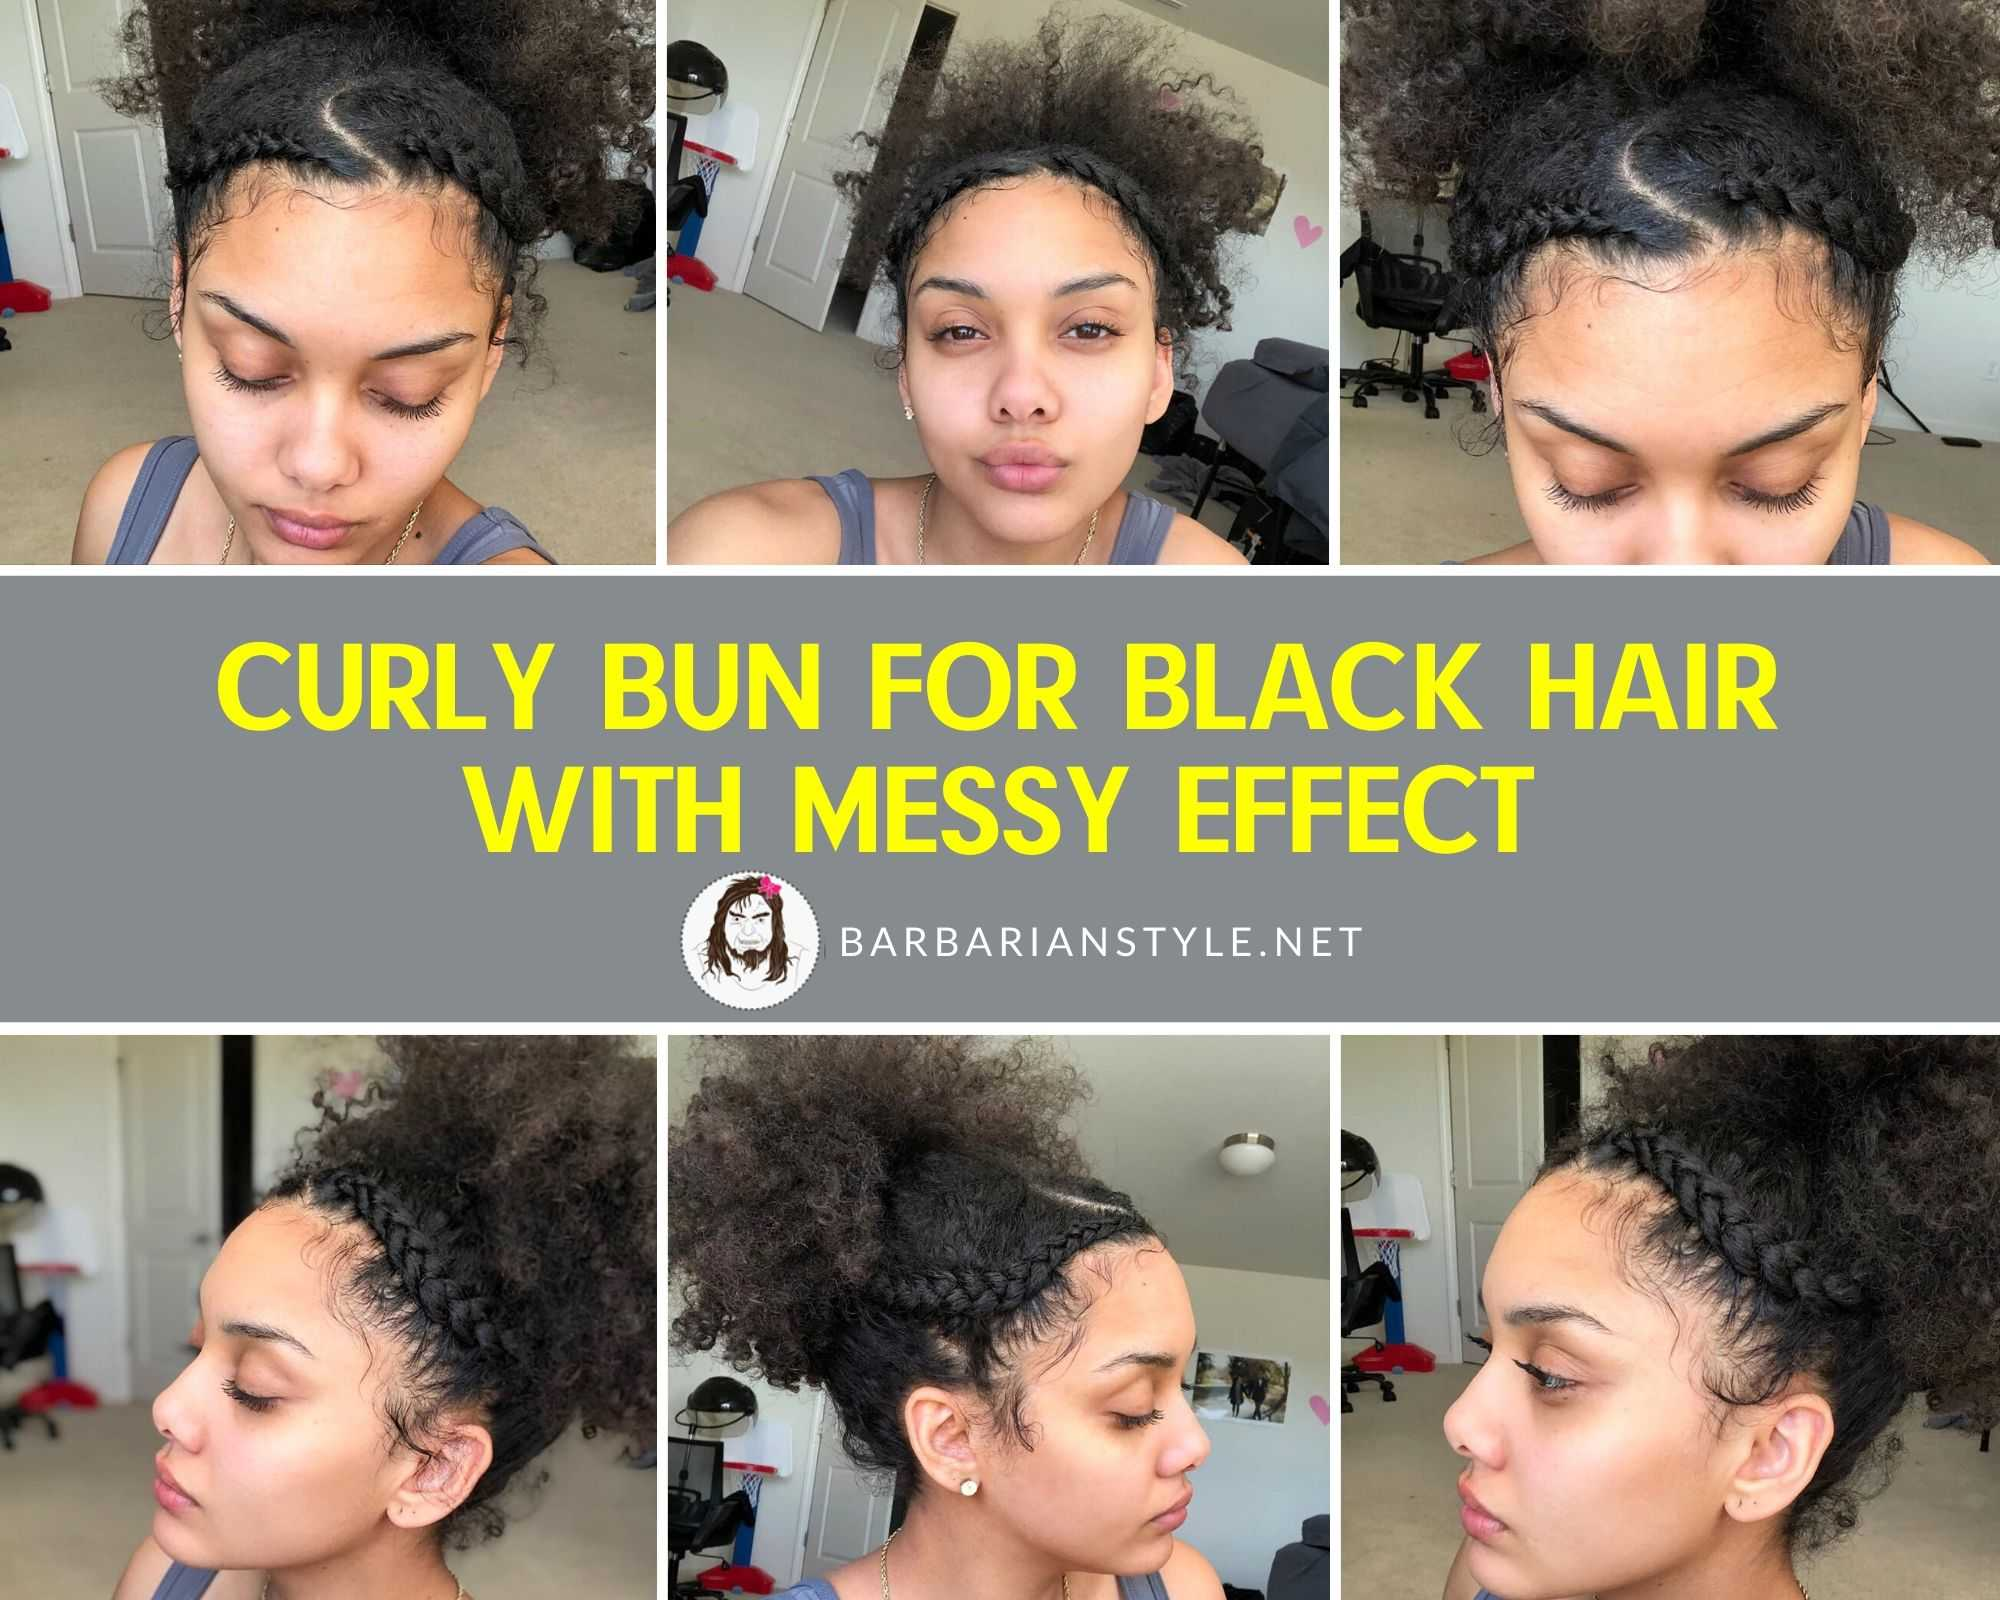 curly bun for black hair with messy effect